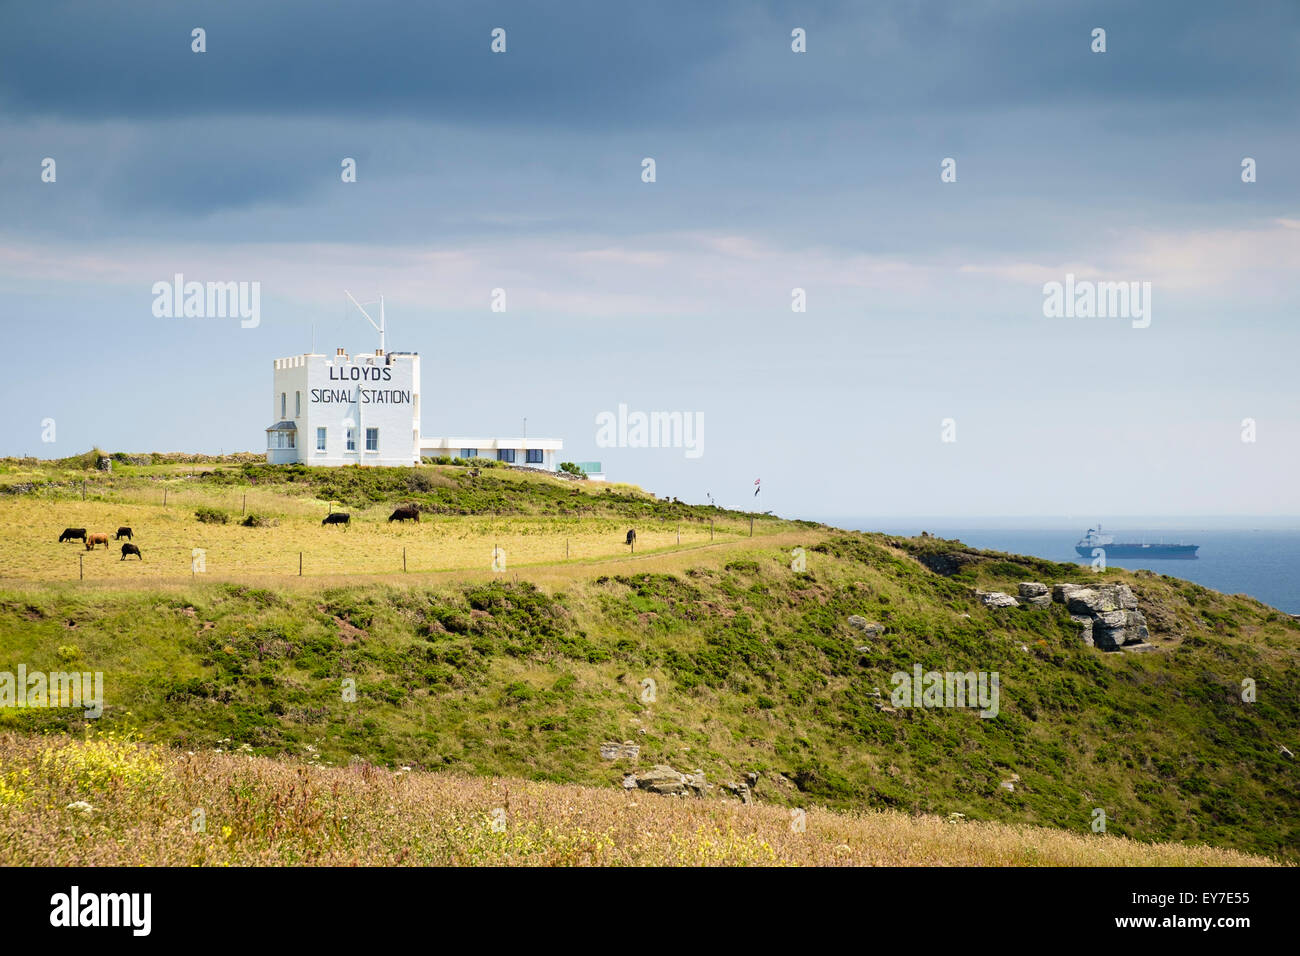 LLoyds Signal Station on the South West Coast Path cliffs overlooking the sea near Lizard Point, Cornwall, England, - Stock Image